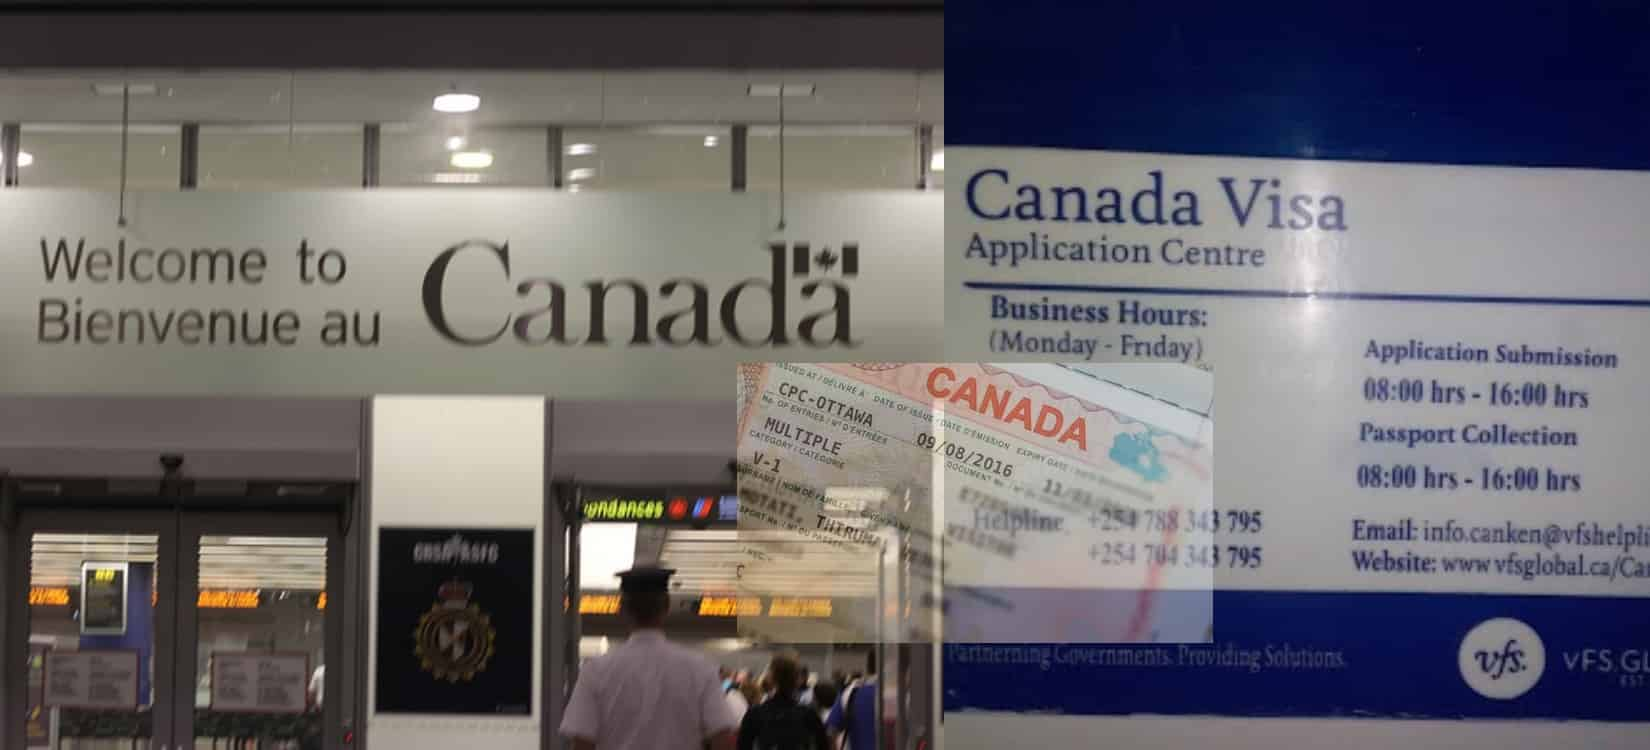 Canada Visa Requirements For Kenyan Citizens 2020